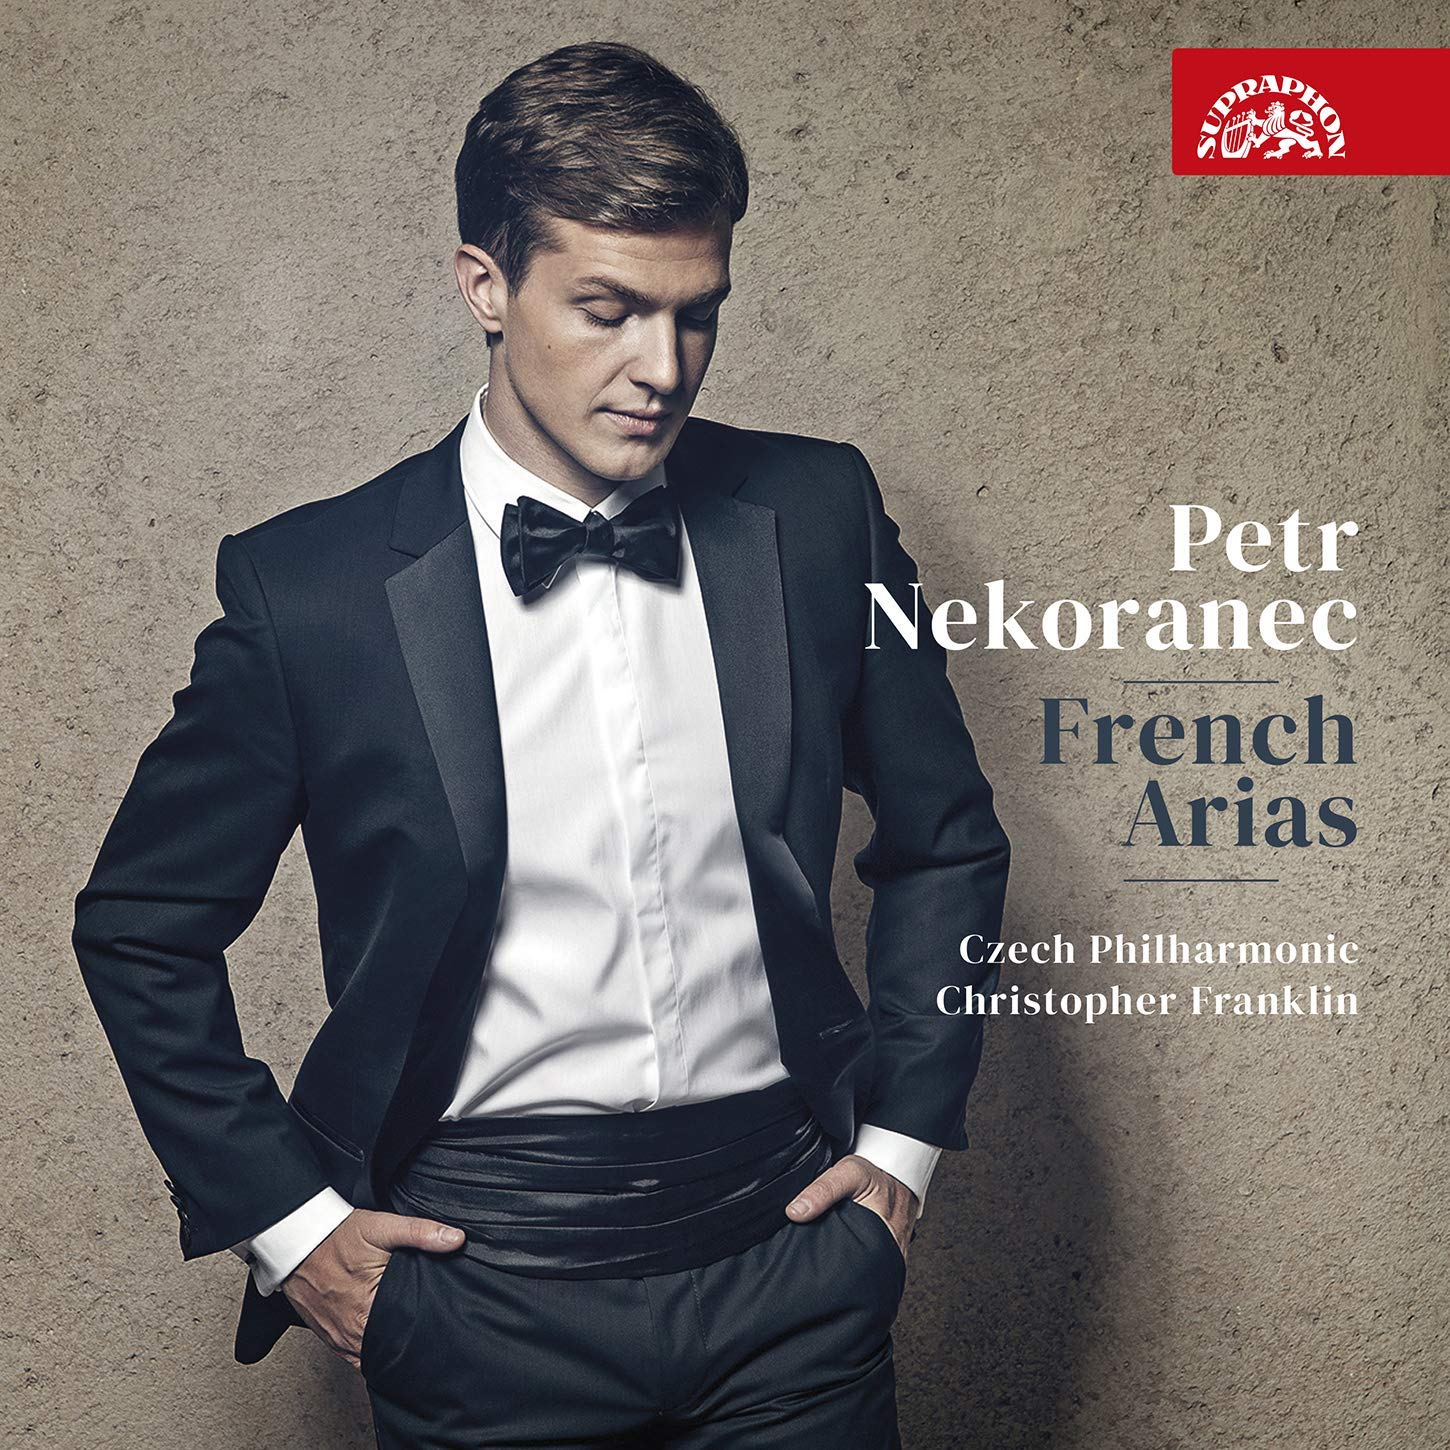 Review of Peter Nekoranec: French Arias